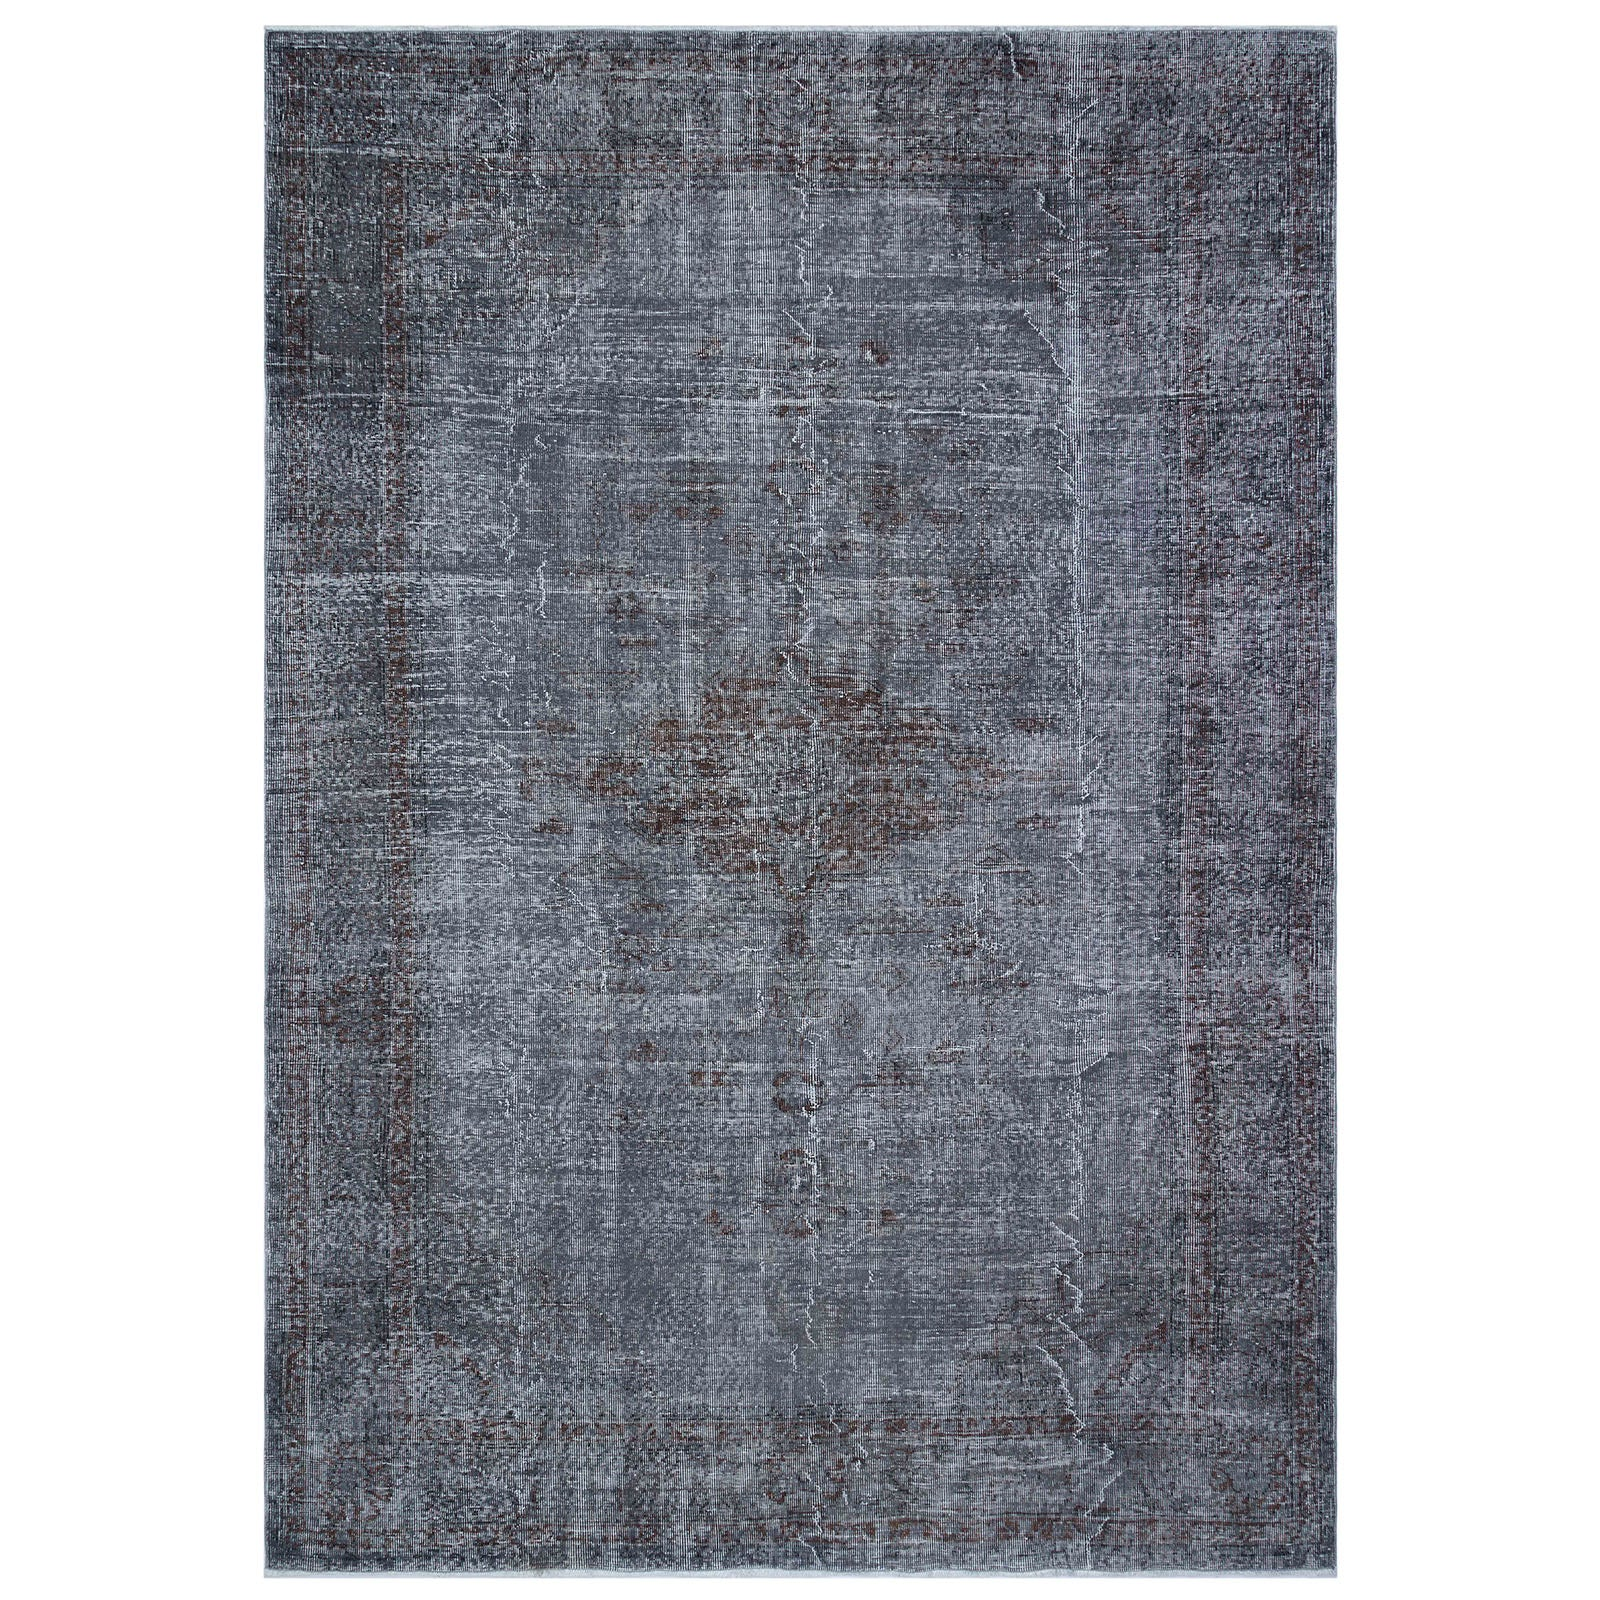 Hali 205X292  CM Bursa Handmade over dyed rug 1589 -  205*292 سجاده بورصة صناعة يدوية على بساط مصبوغ - Shop Online Furniture and Home Decor Store in Dubai, UAE at ebarza